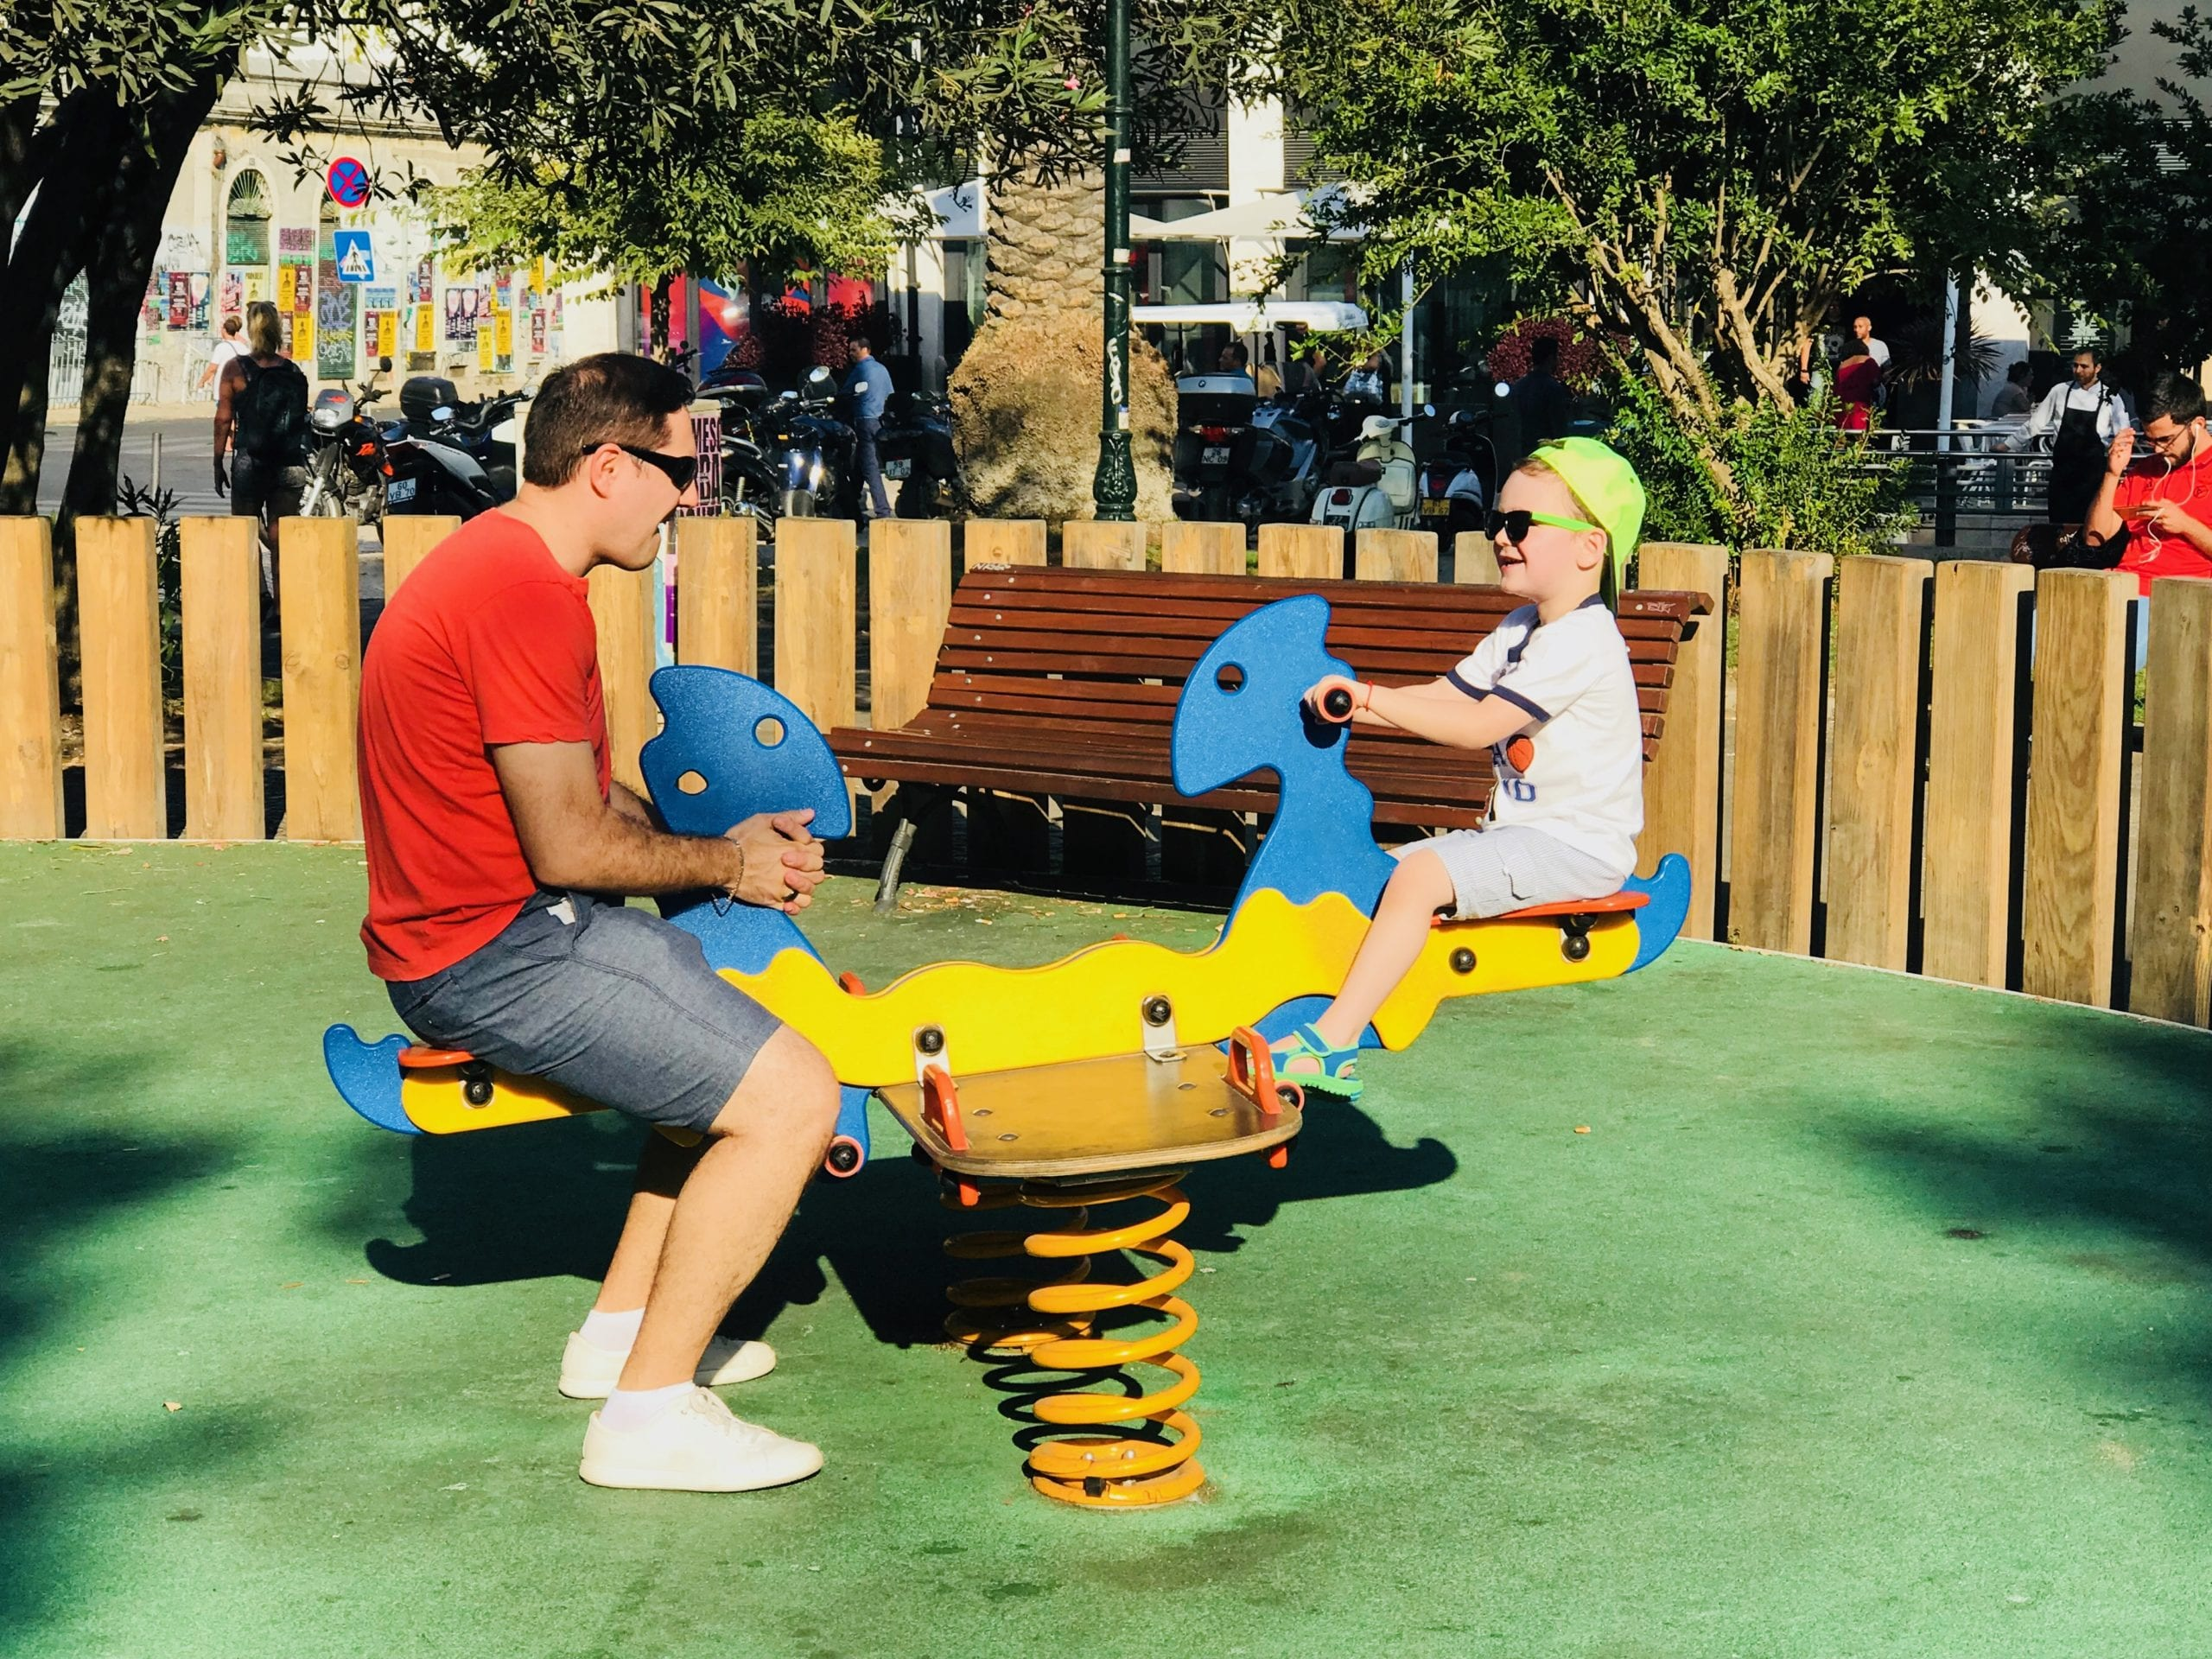 Father and son enjoying a lazy afternoon at a playground in Lisbon, Portugal